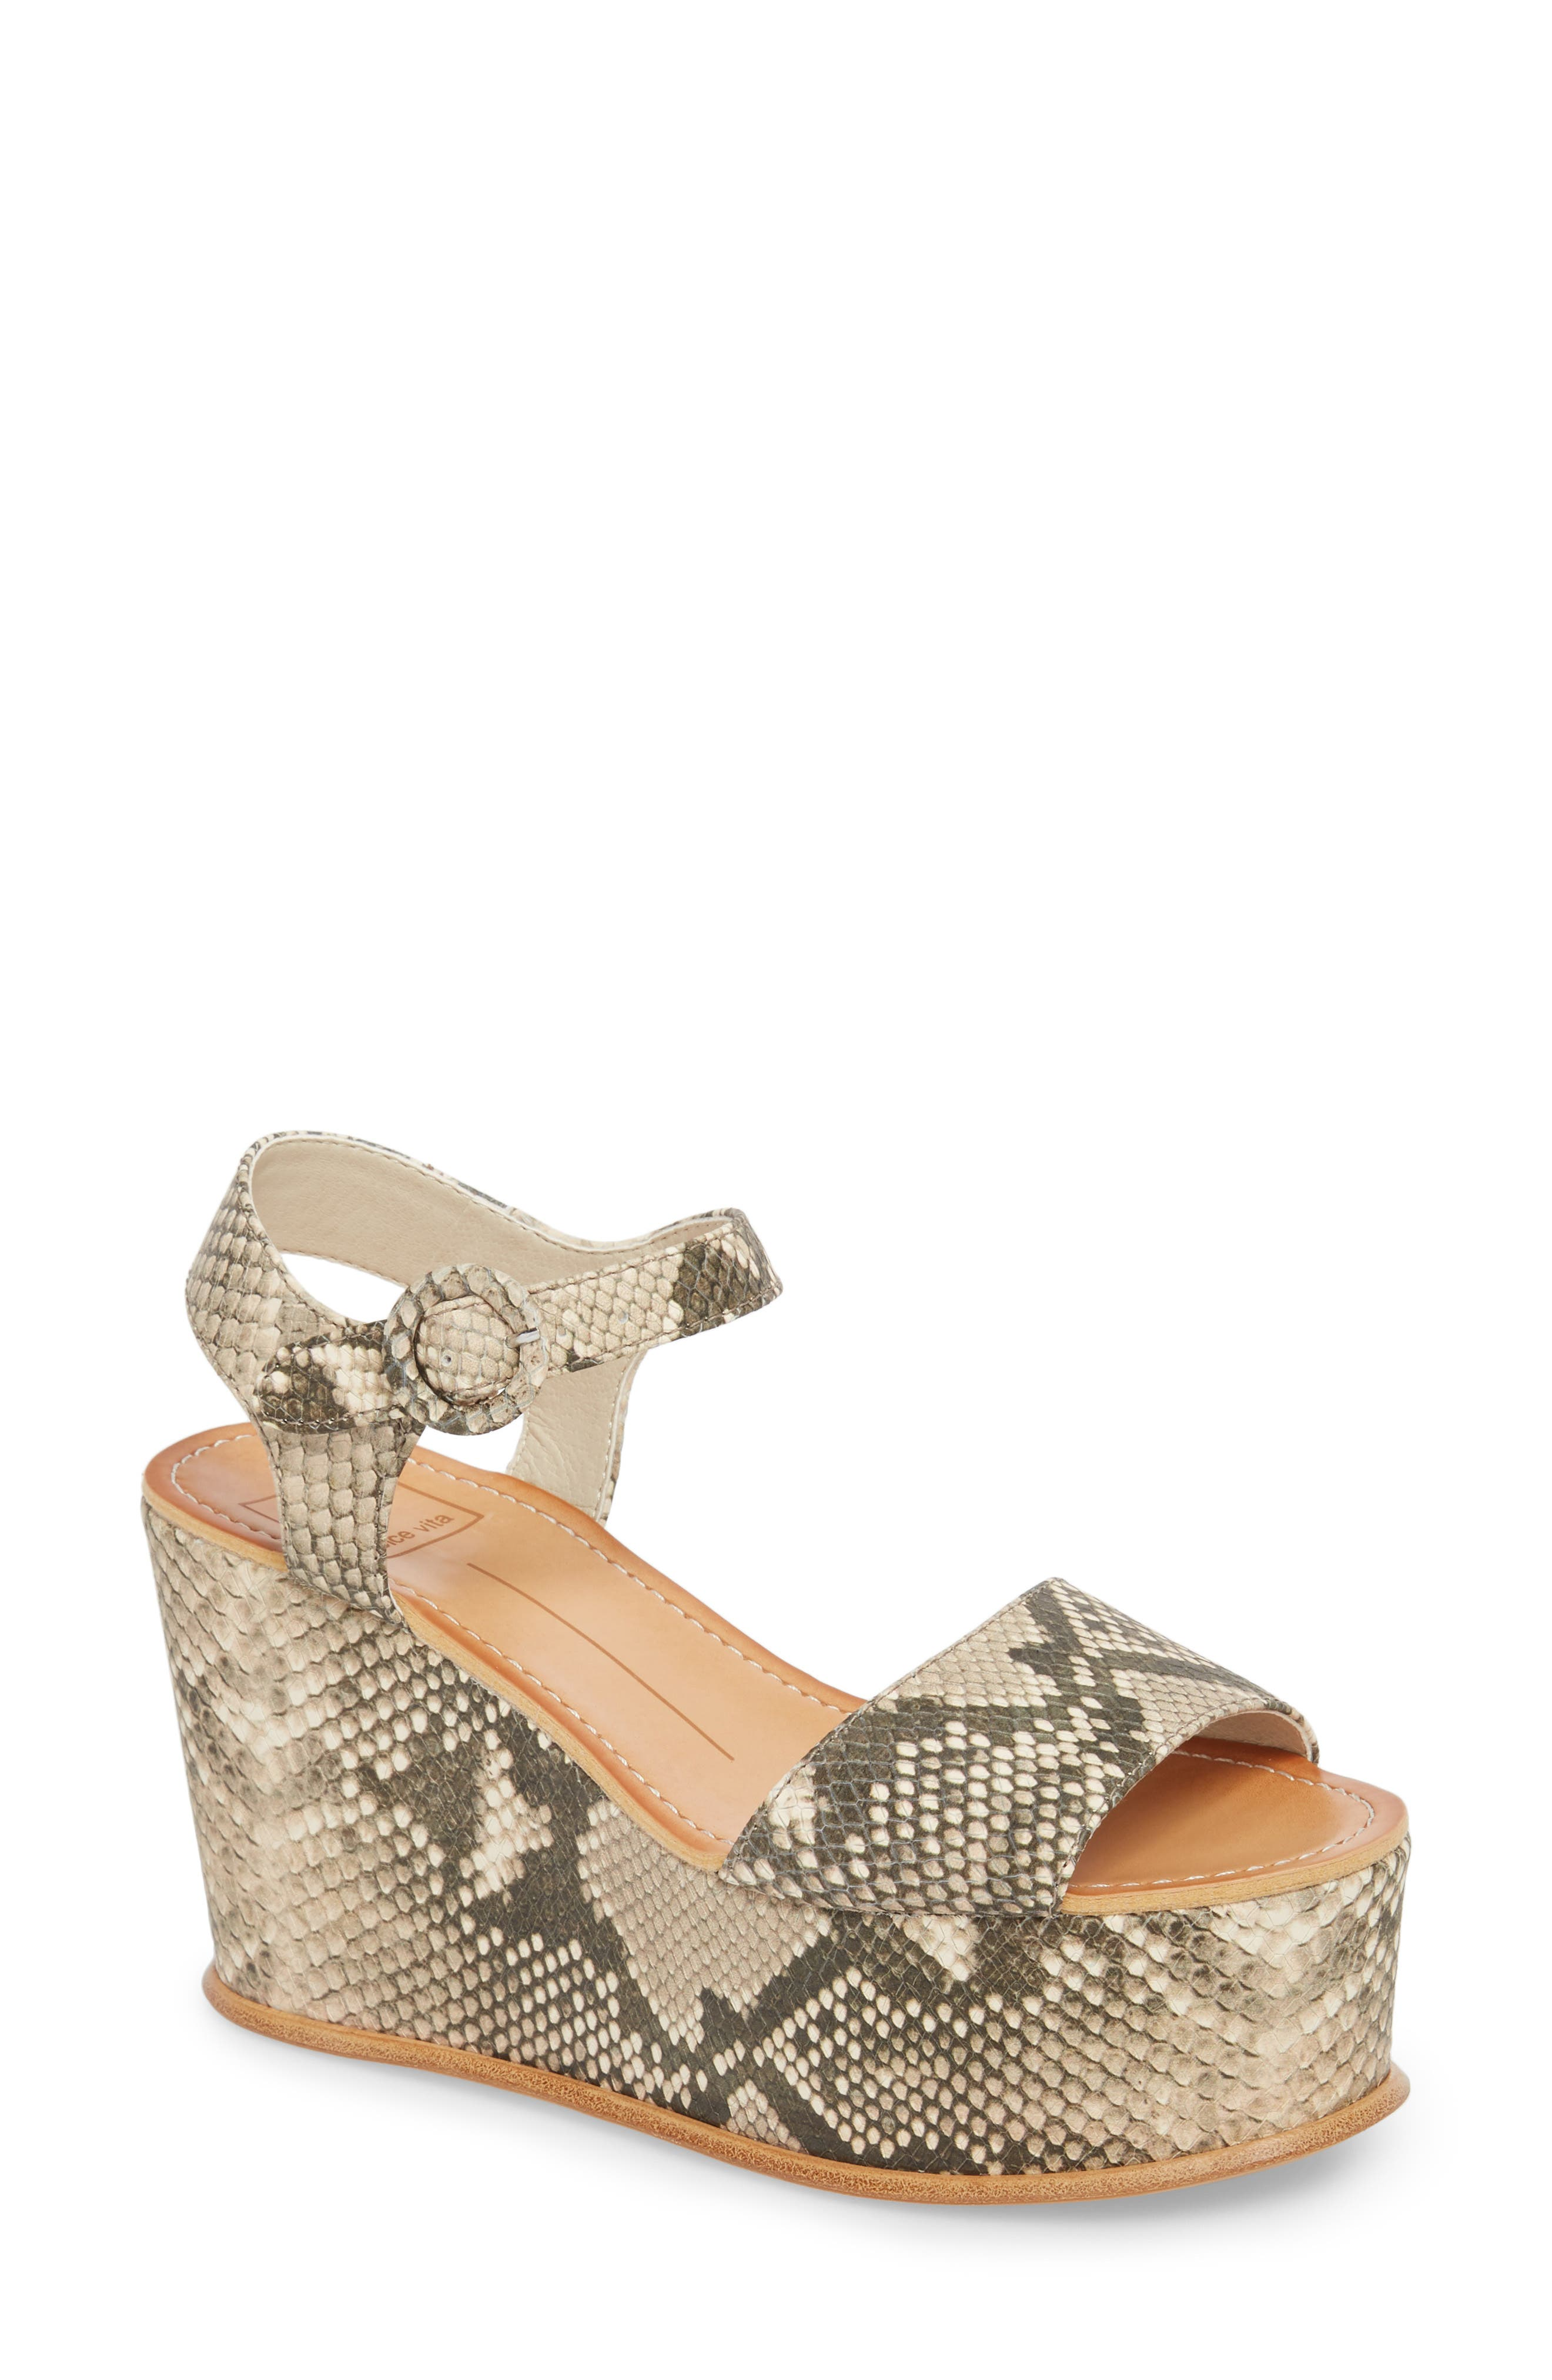 Dolce Vita Datiah Platform Wedge Sandal (Women)